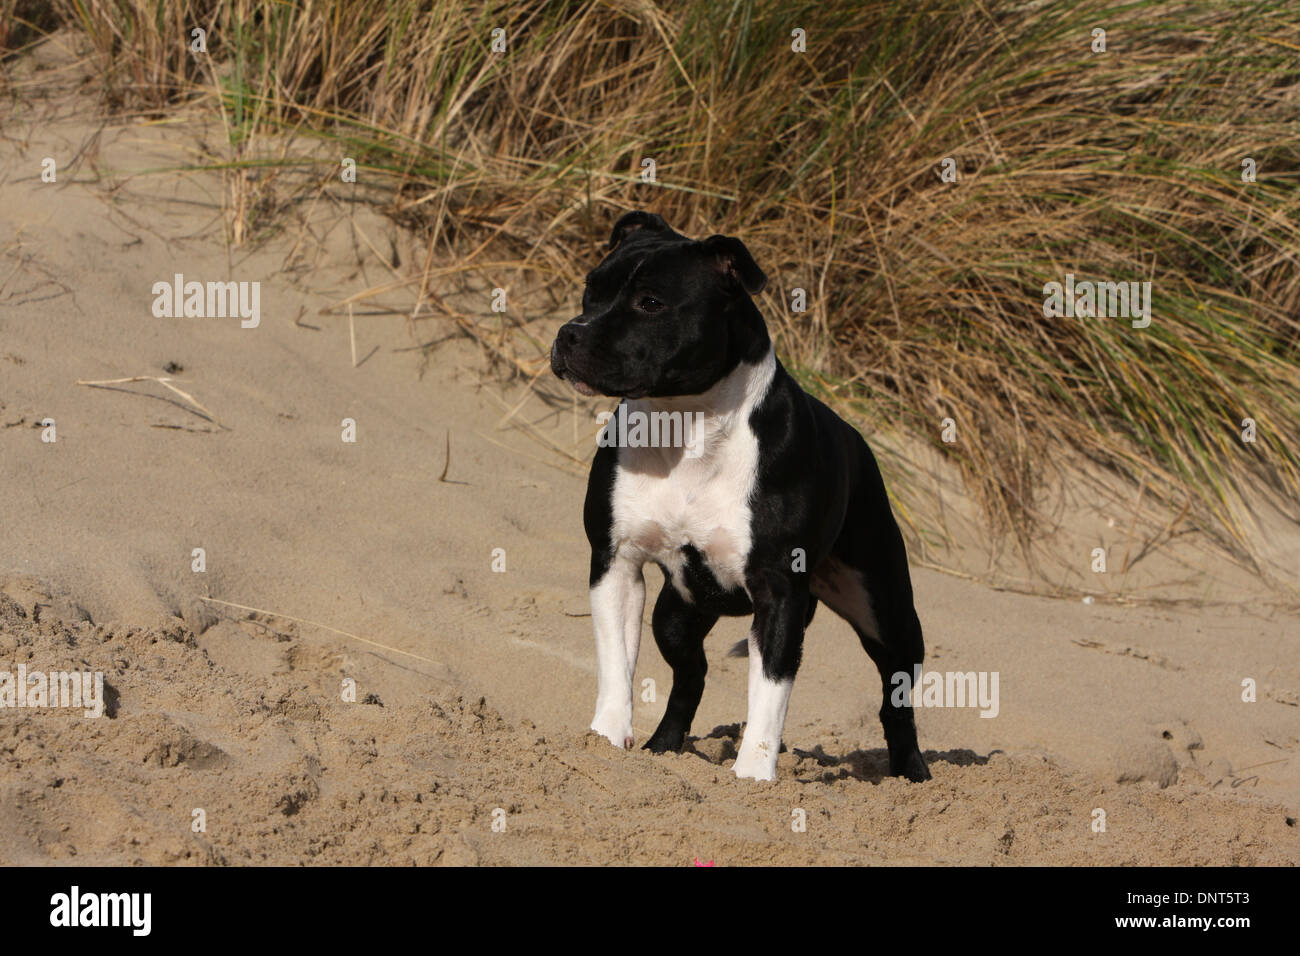 dog Staffordshire Bull Terrier / Staffie  adult standing in dunes - Stock Image